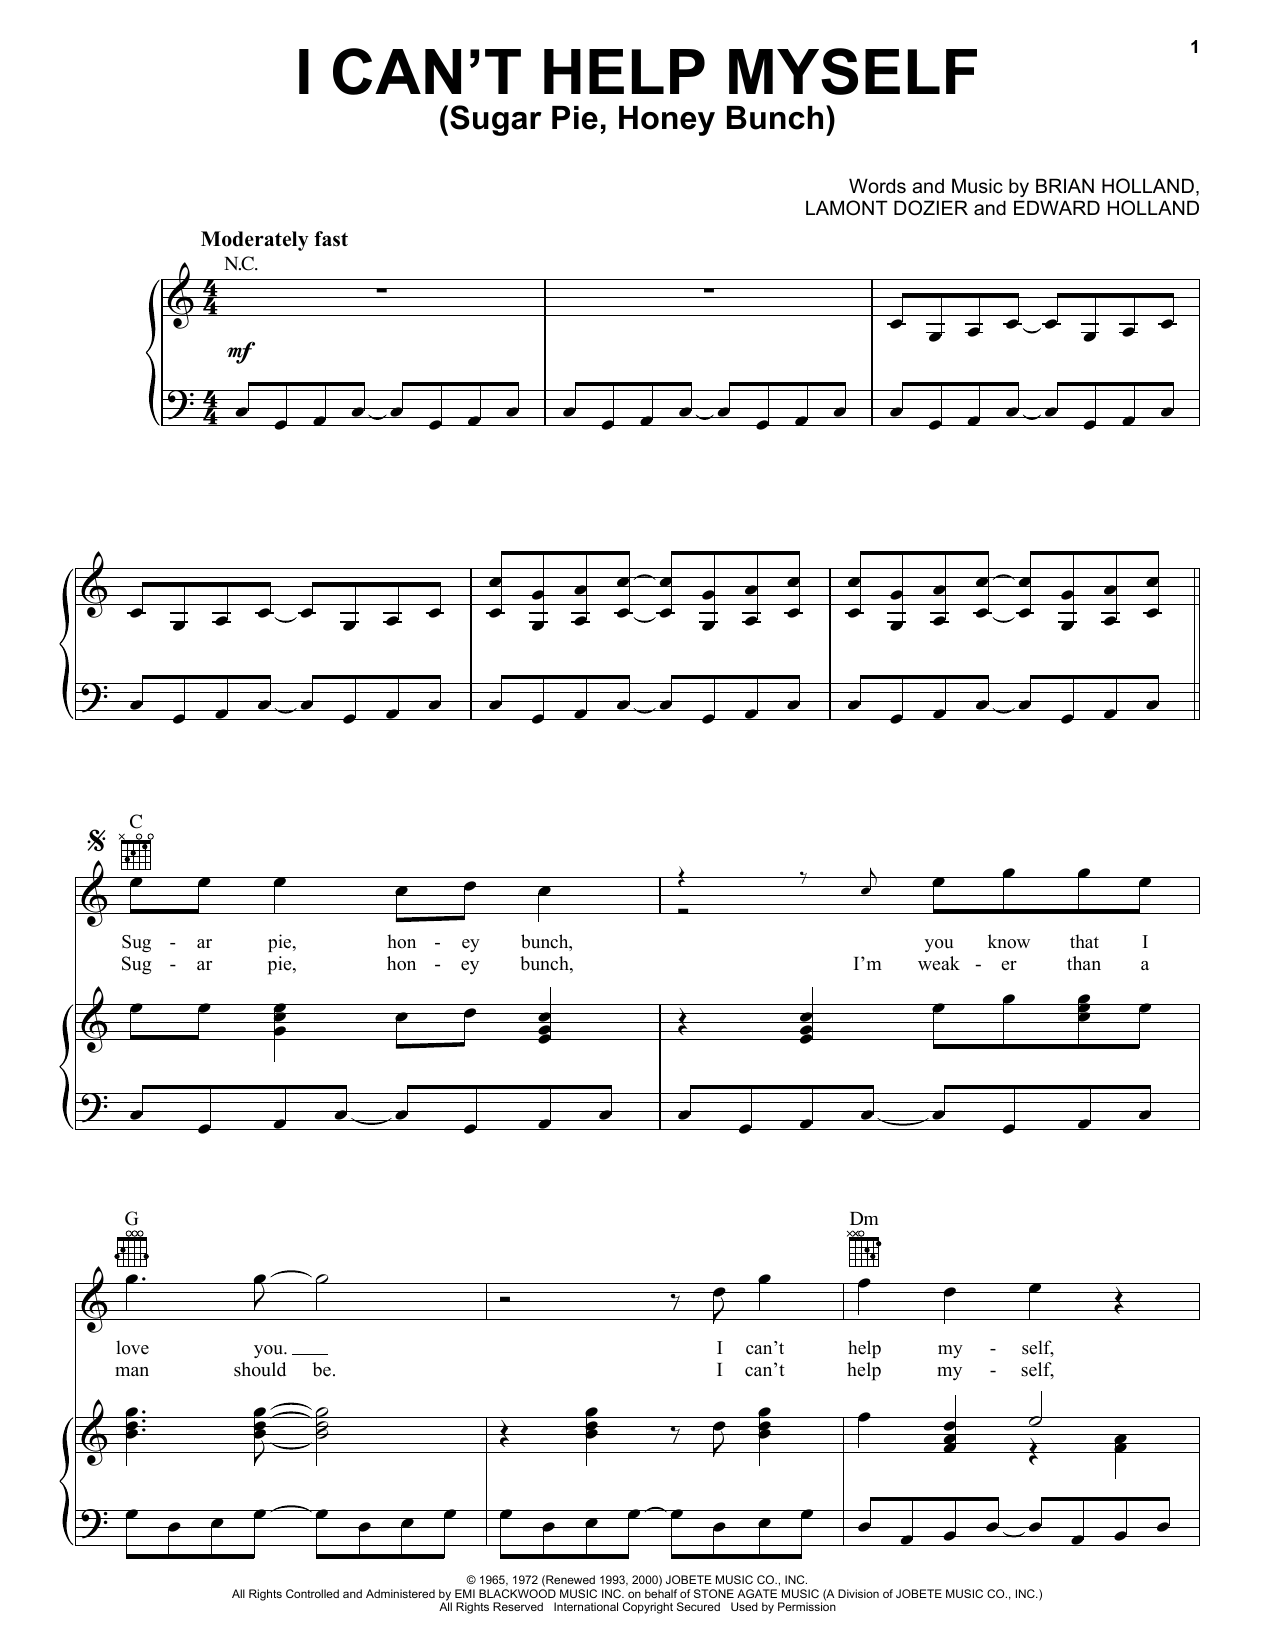 I Can't Help Myself (Sugar Pie, Honey Bunch) Sheet Music